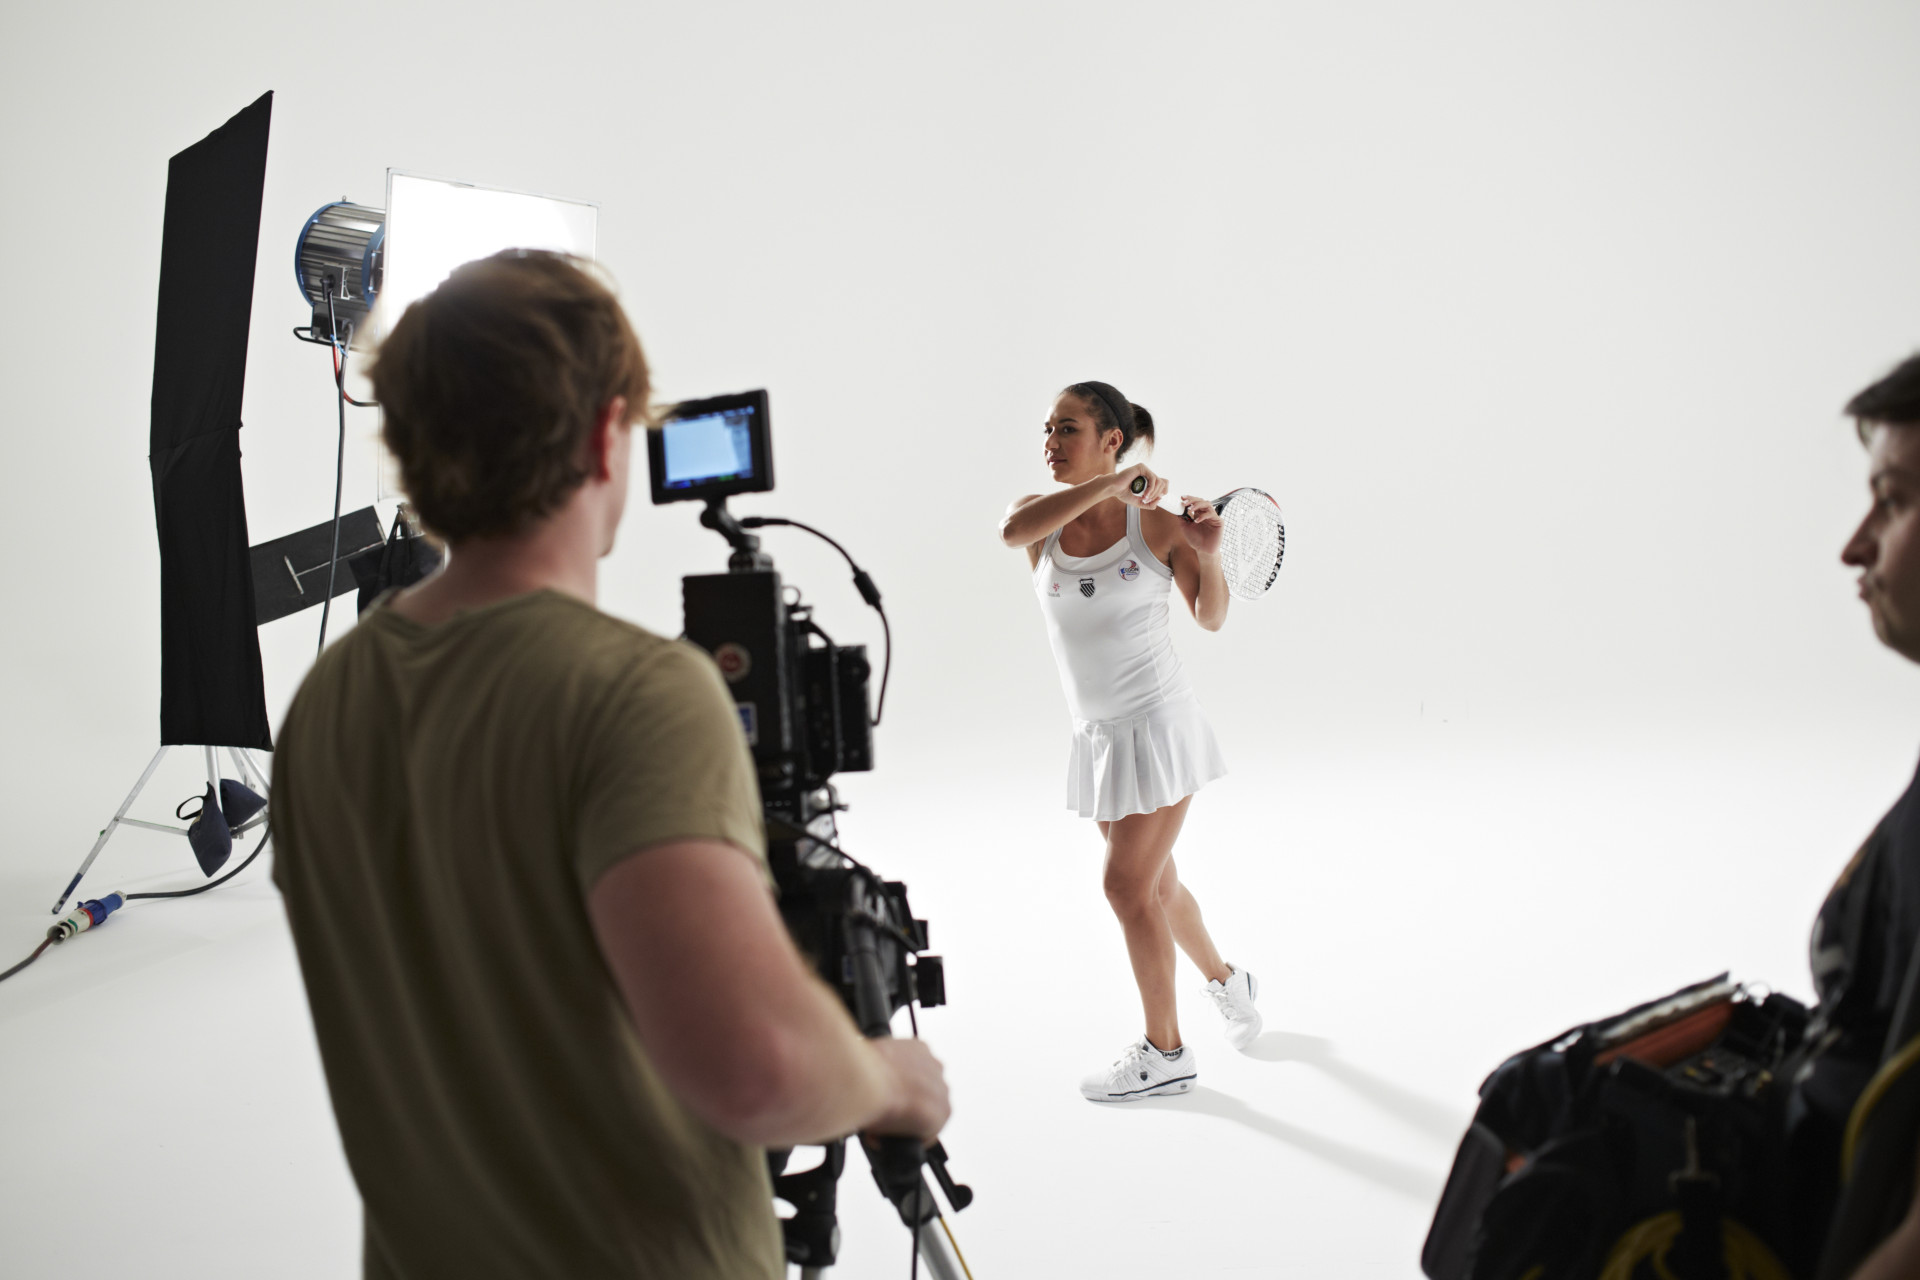 753A3074-Britsh Tennis No.1 Heather Watson at the filming of Heroes of Tomorrow video for Statoil-December 2012